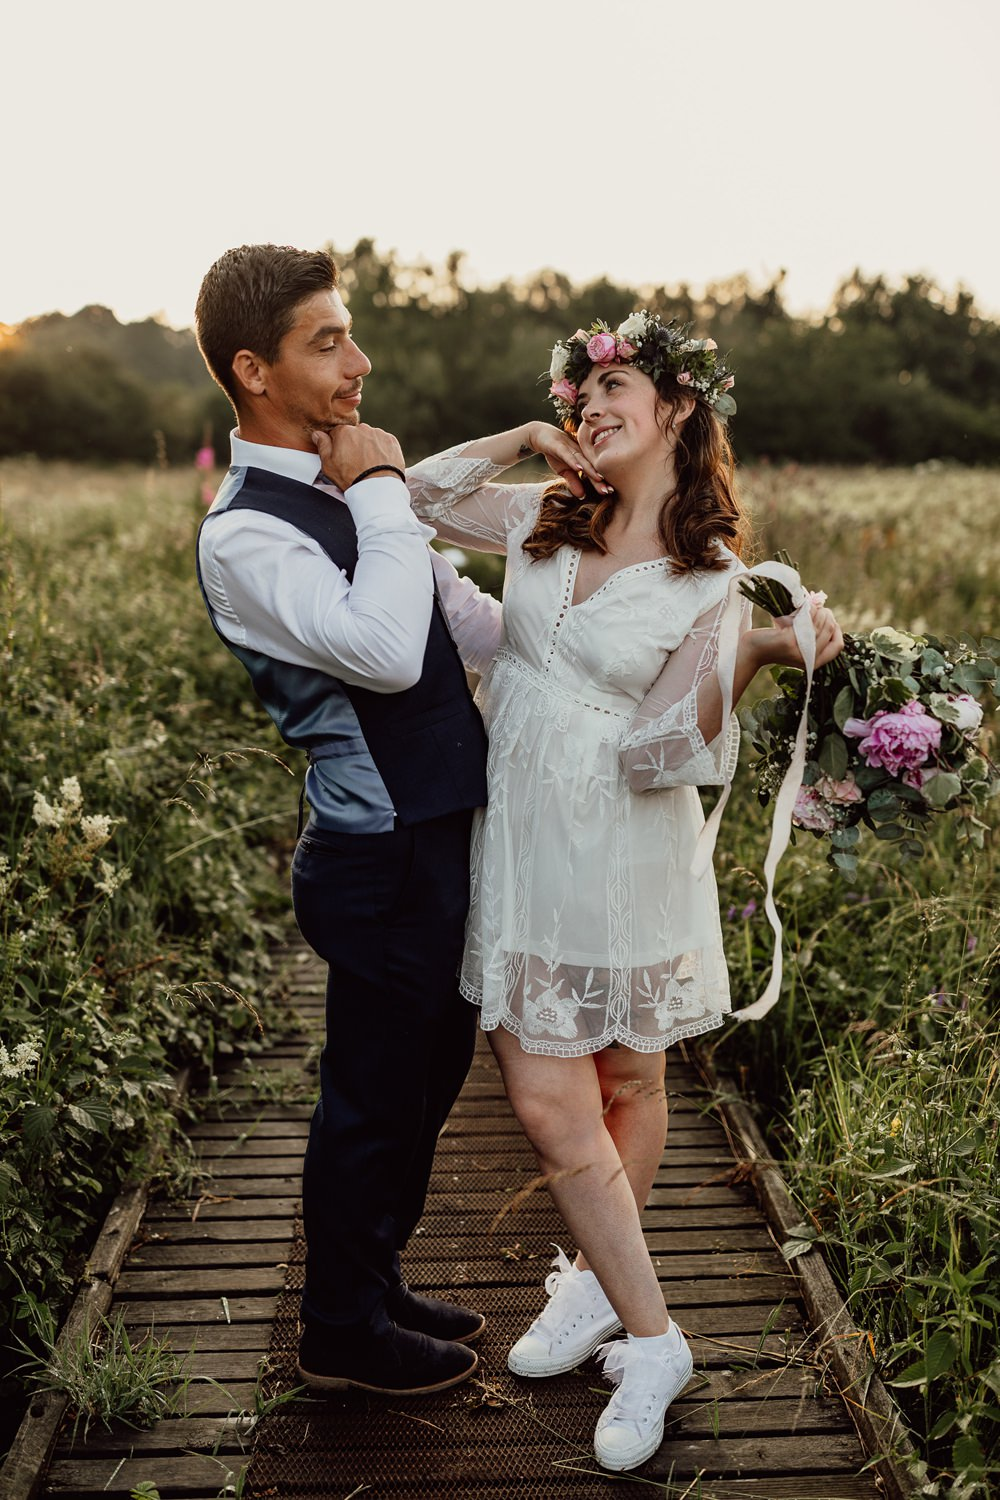 Bride Bridal Dress Gown Short Lace Long Sleeves Flower Crown Mannington Gardens Wedding Cara Zagni Photography